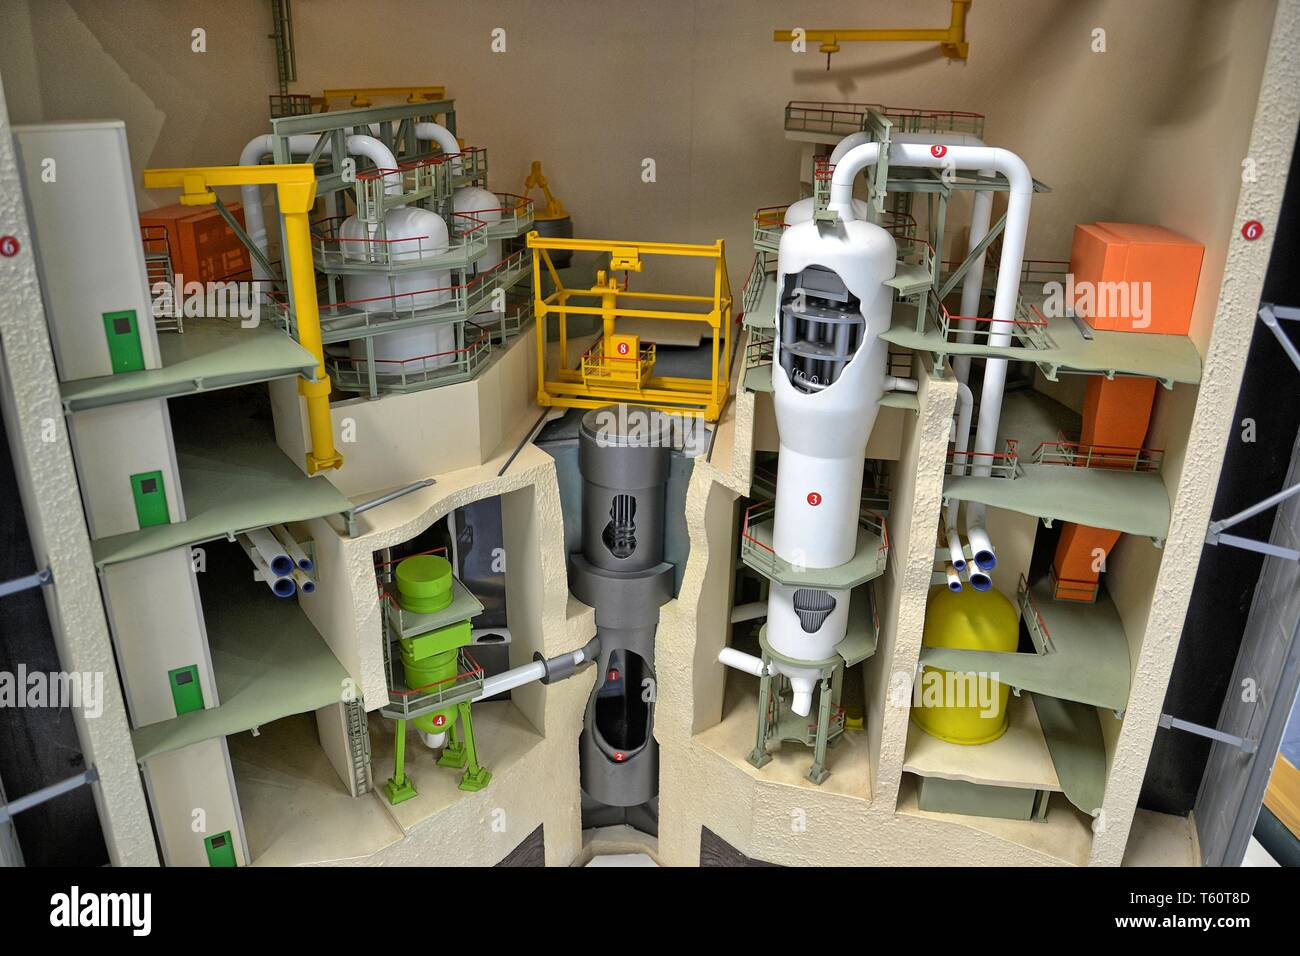 Model of machinery inside the nuclear reactor, in the Visitor Centre, at the EDF Nuclear Power Station at Sizewell, Suffolk, UK. Nuclear Power Plant - Stock Image